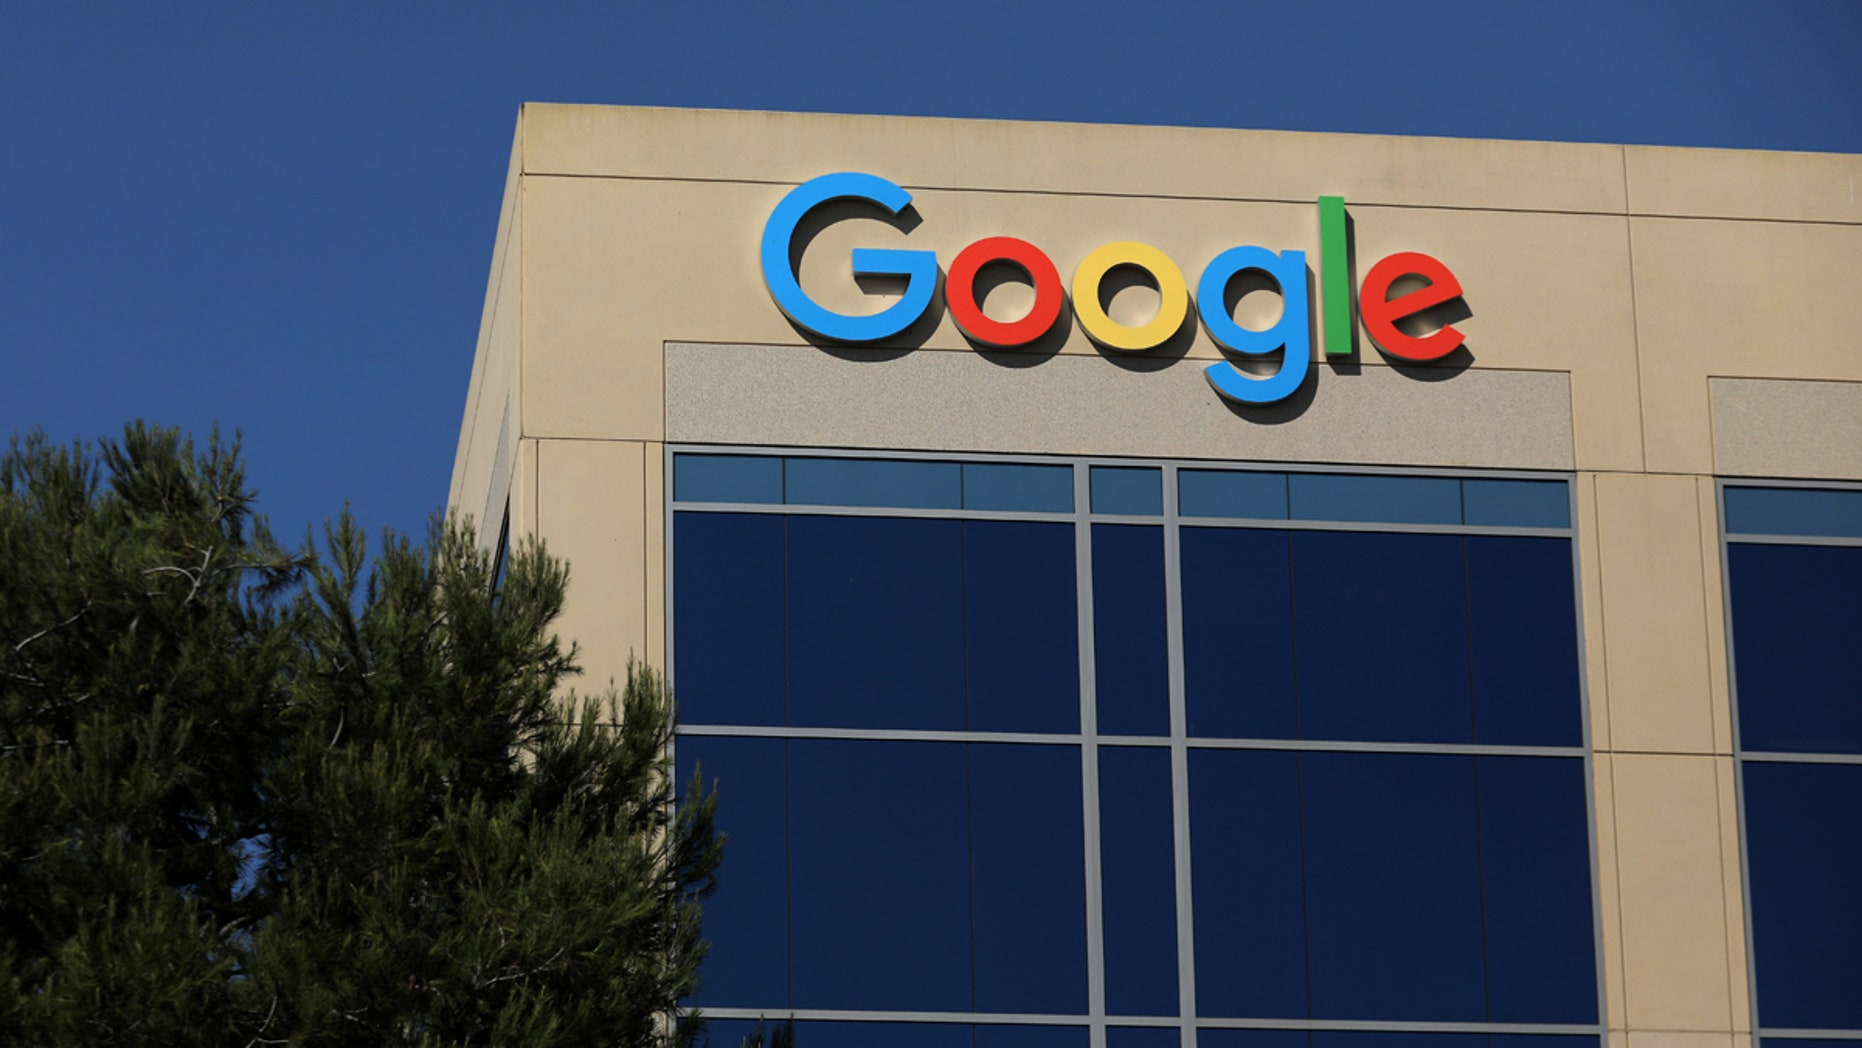 Google's trademark is seen on a building in Irvine, California.